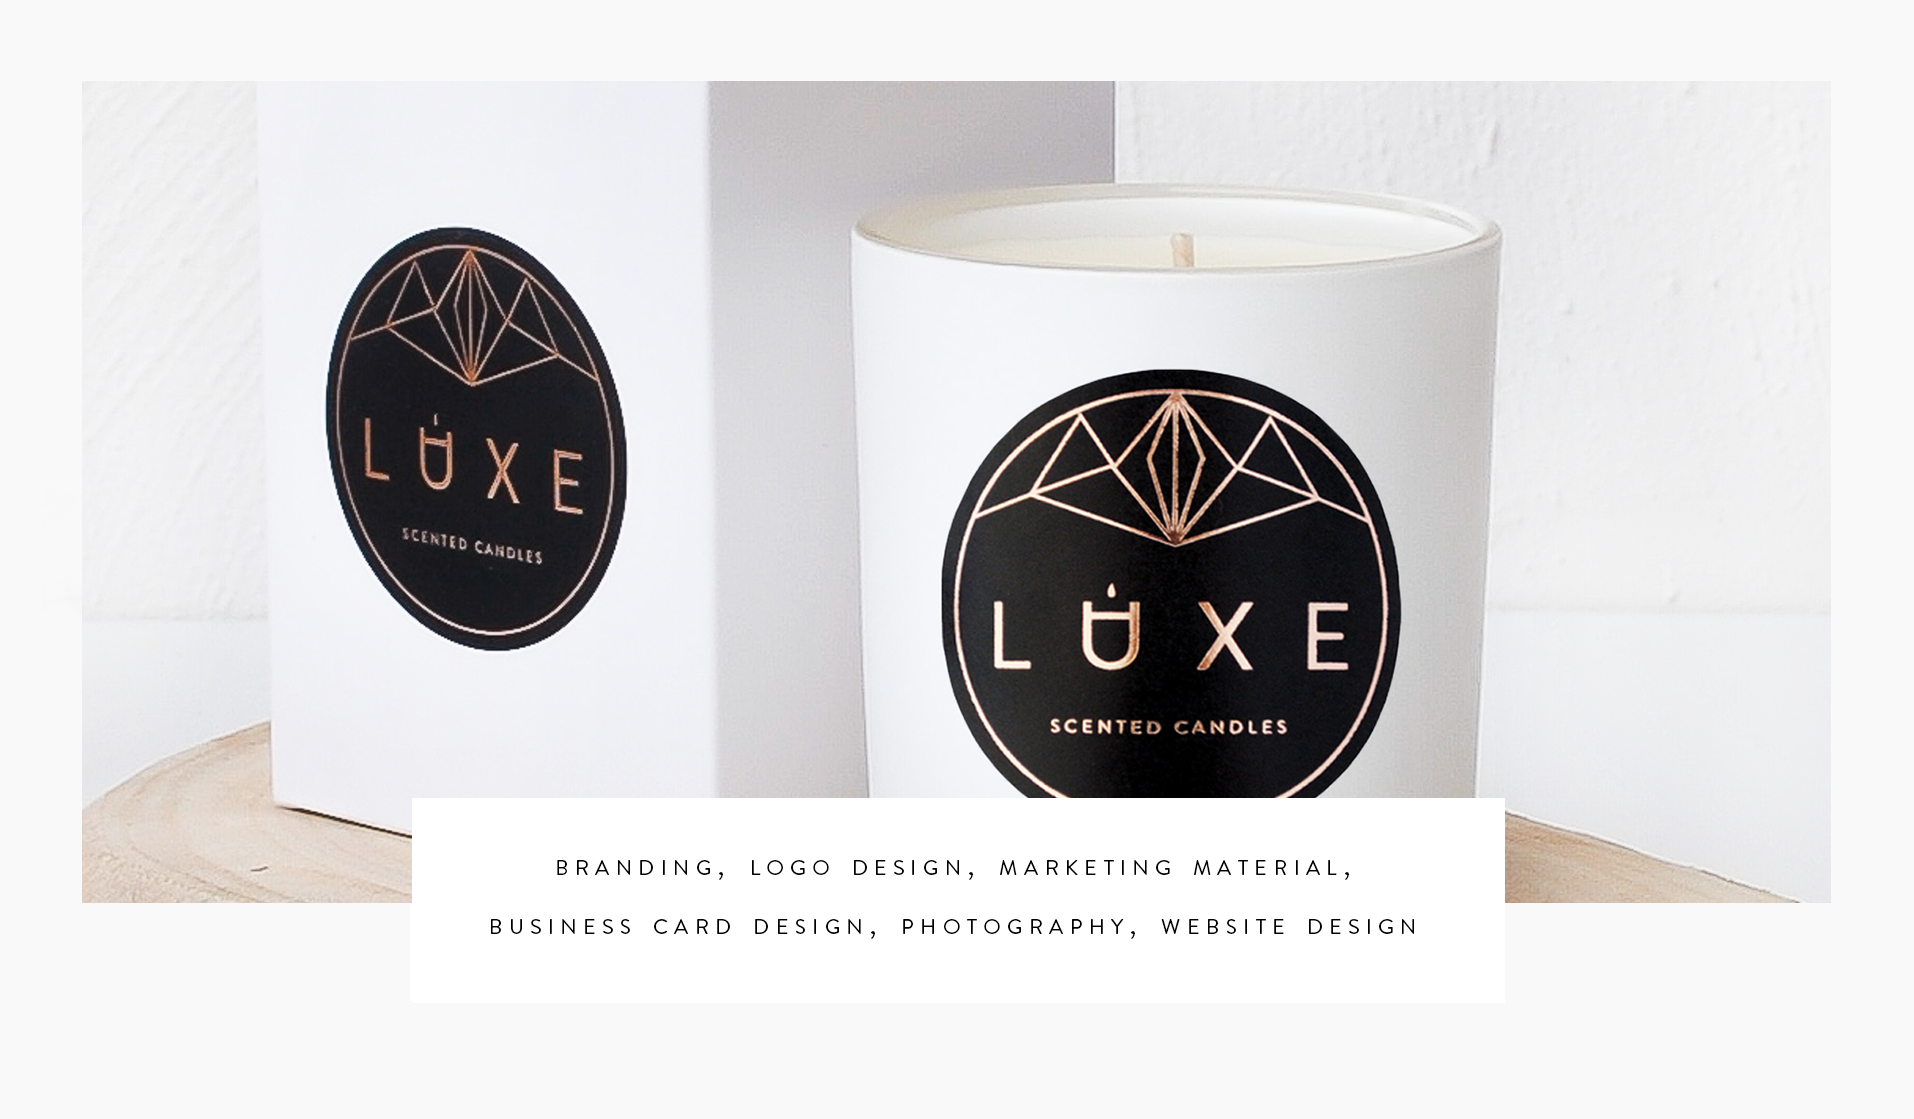 LUXE_SCENTED_CANDLES.png